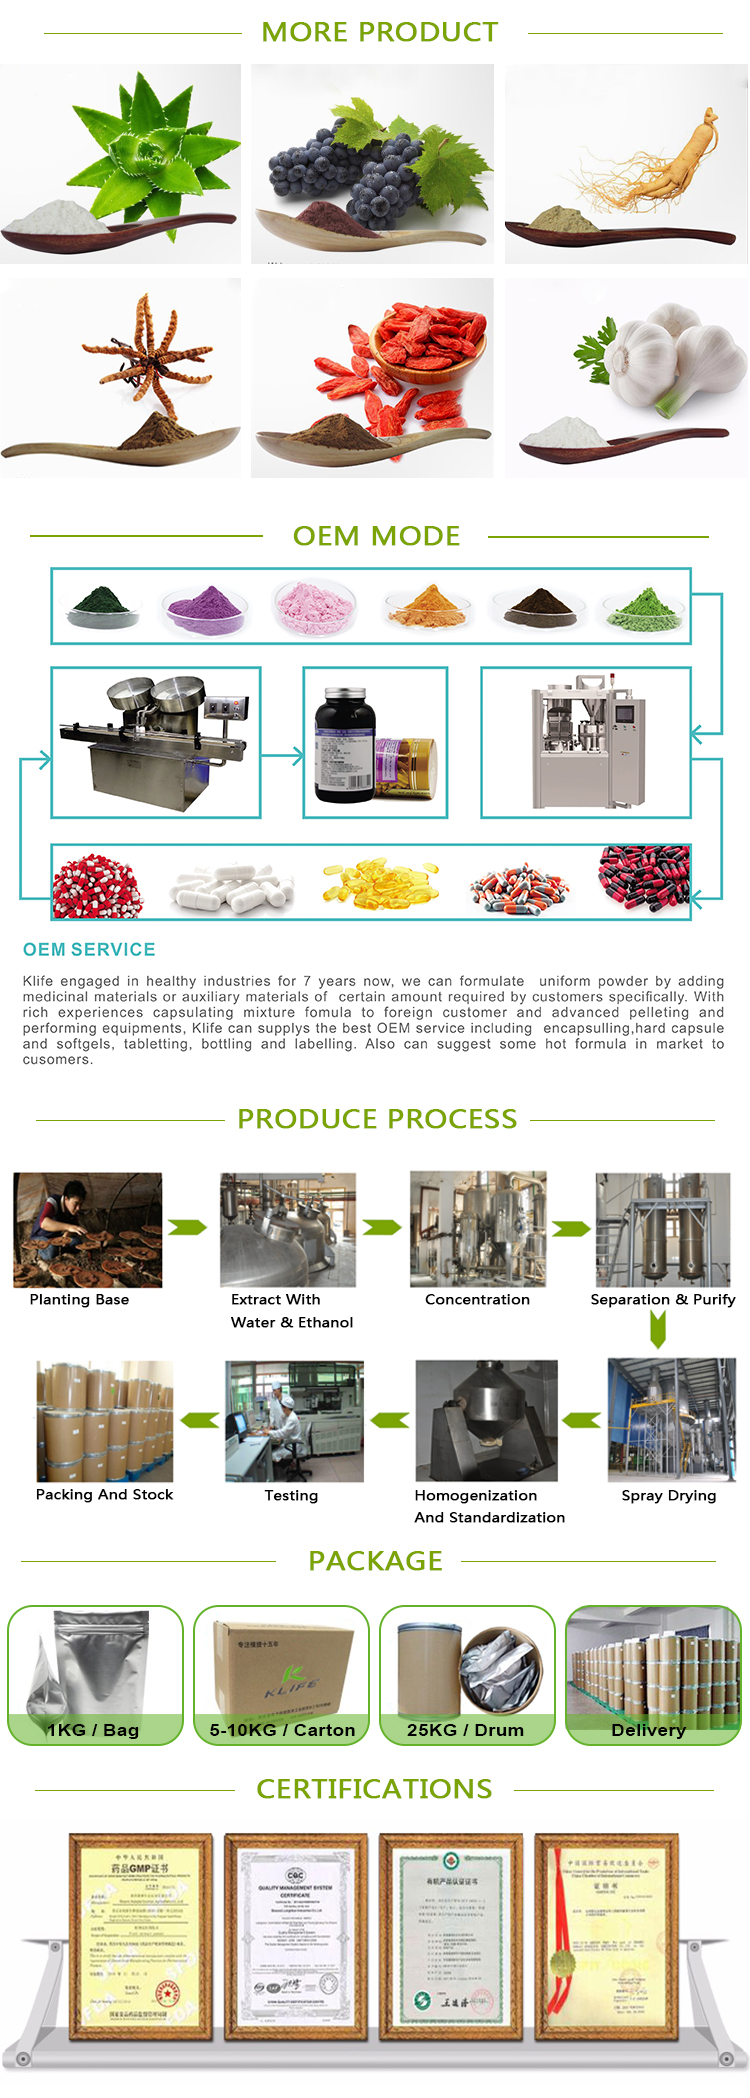 GRAPE SEED EXTRACT1-pintu.jpg